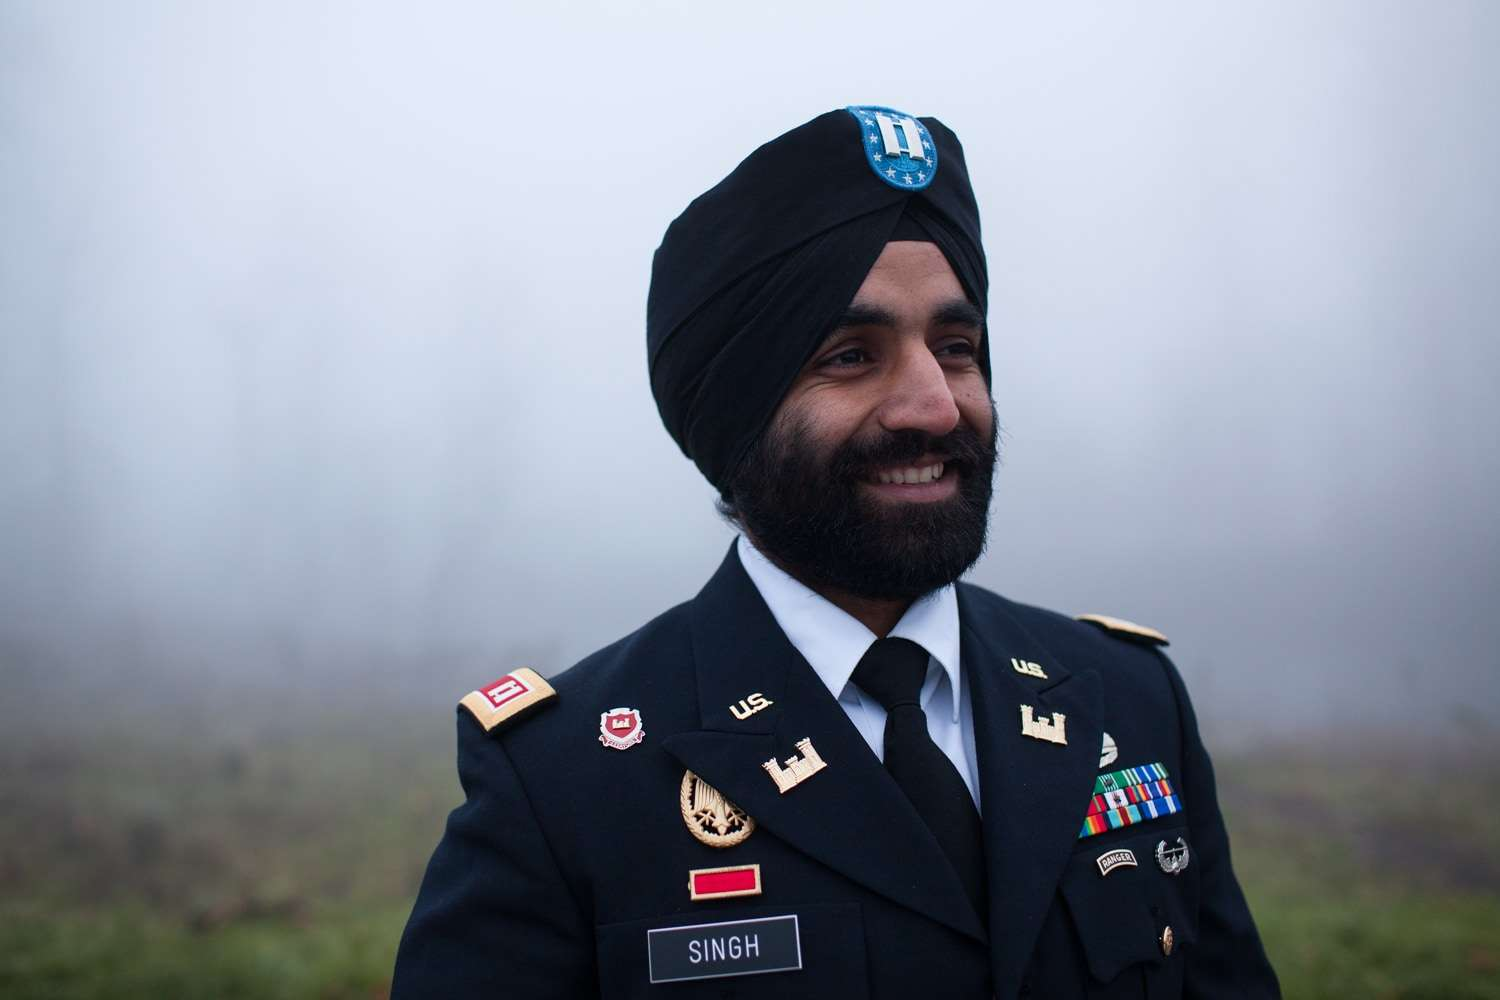 West Point graduate and Bronze Star recipient Captain Simratpal Singh; photo credit: Becket Law & Sikh Coalition.